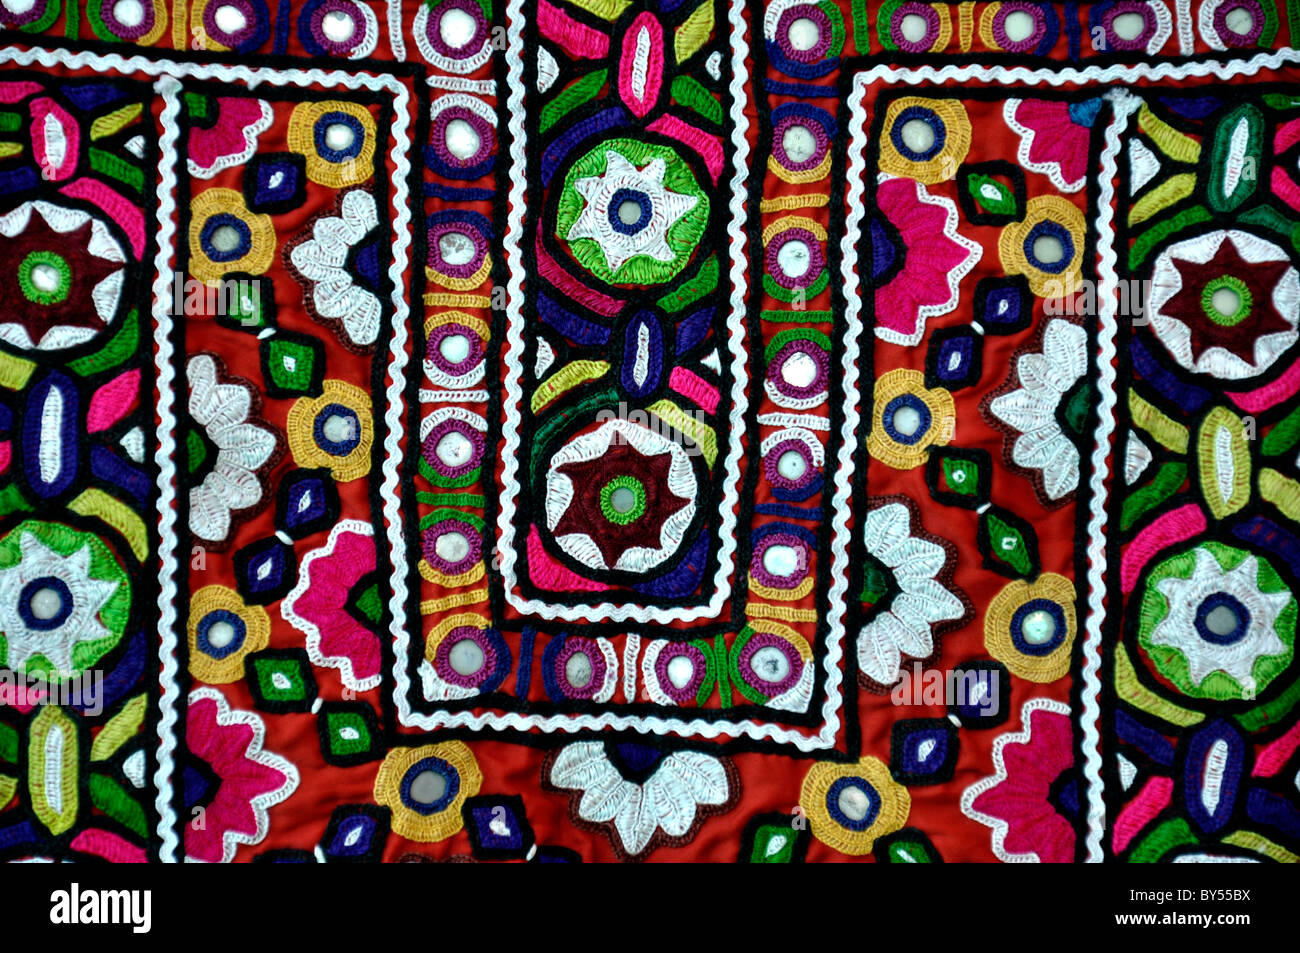 Mirror work on a clothe in Kutch, Gujarat, India - Stock Image